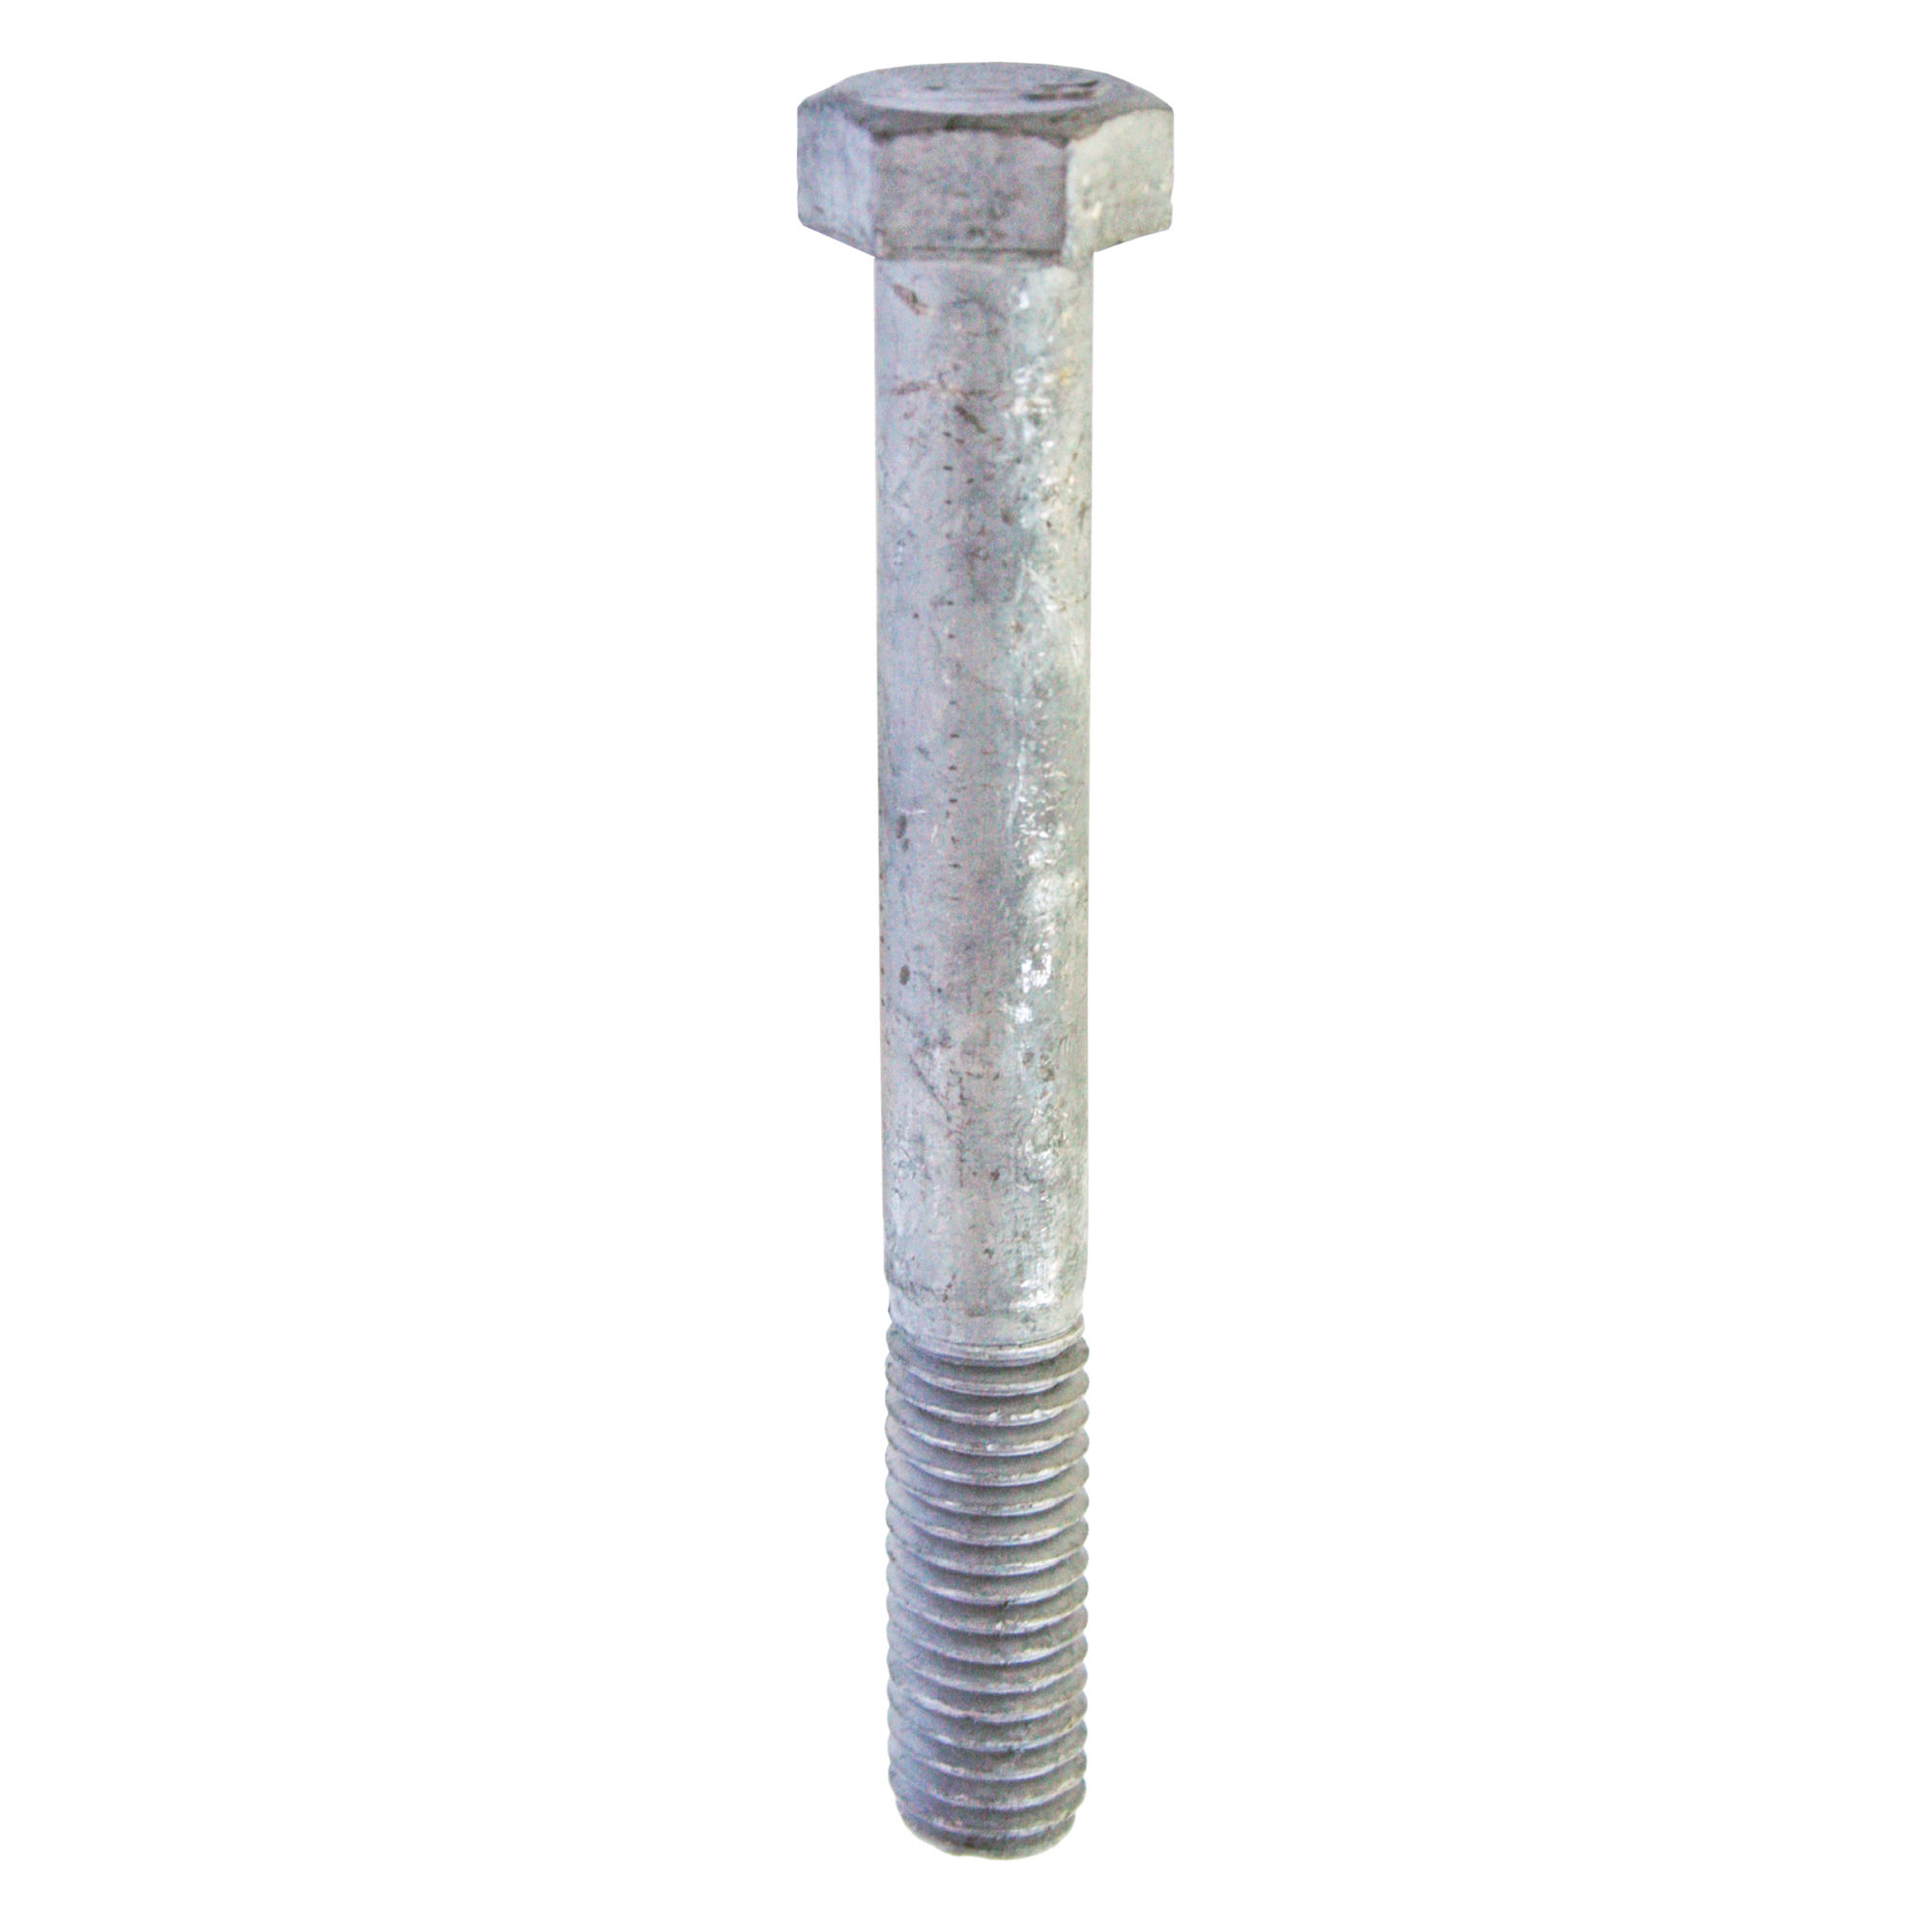 HOT DIPPED GALVANIZED HEX CAP BOLT